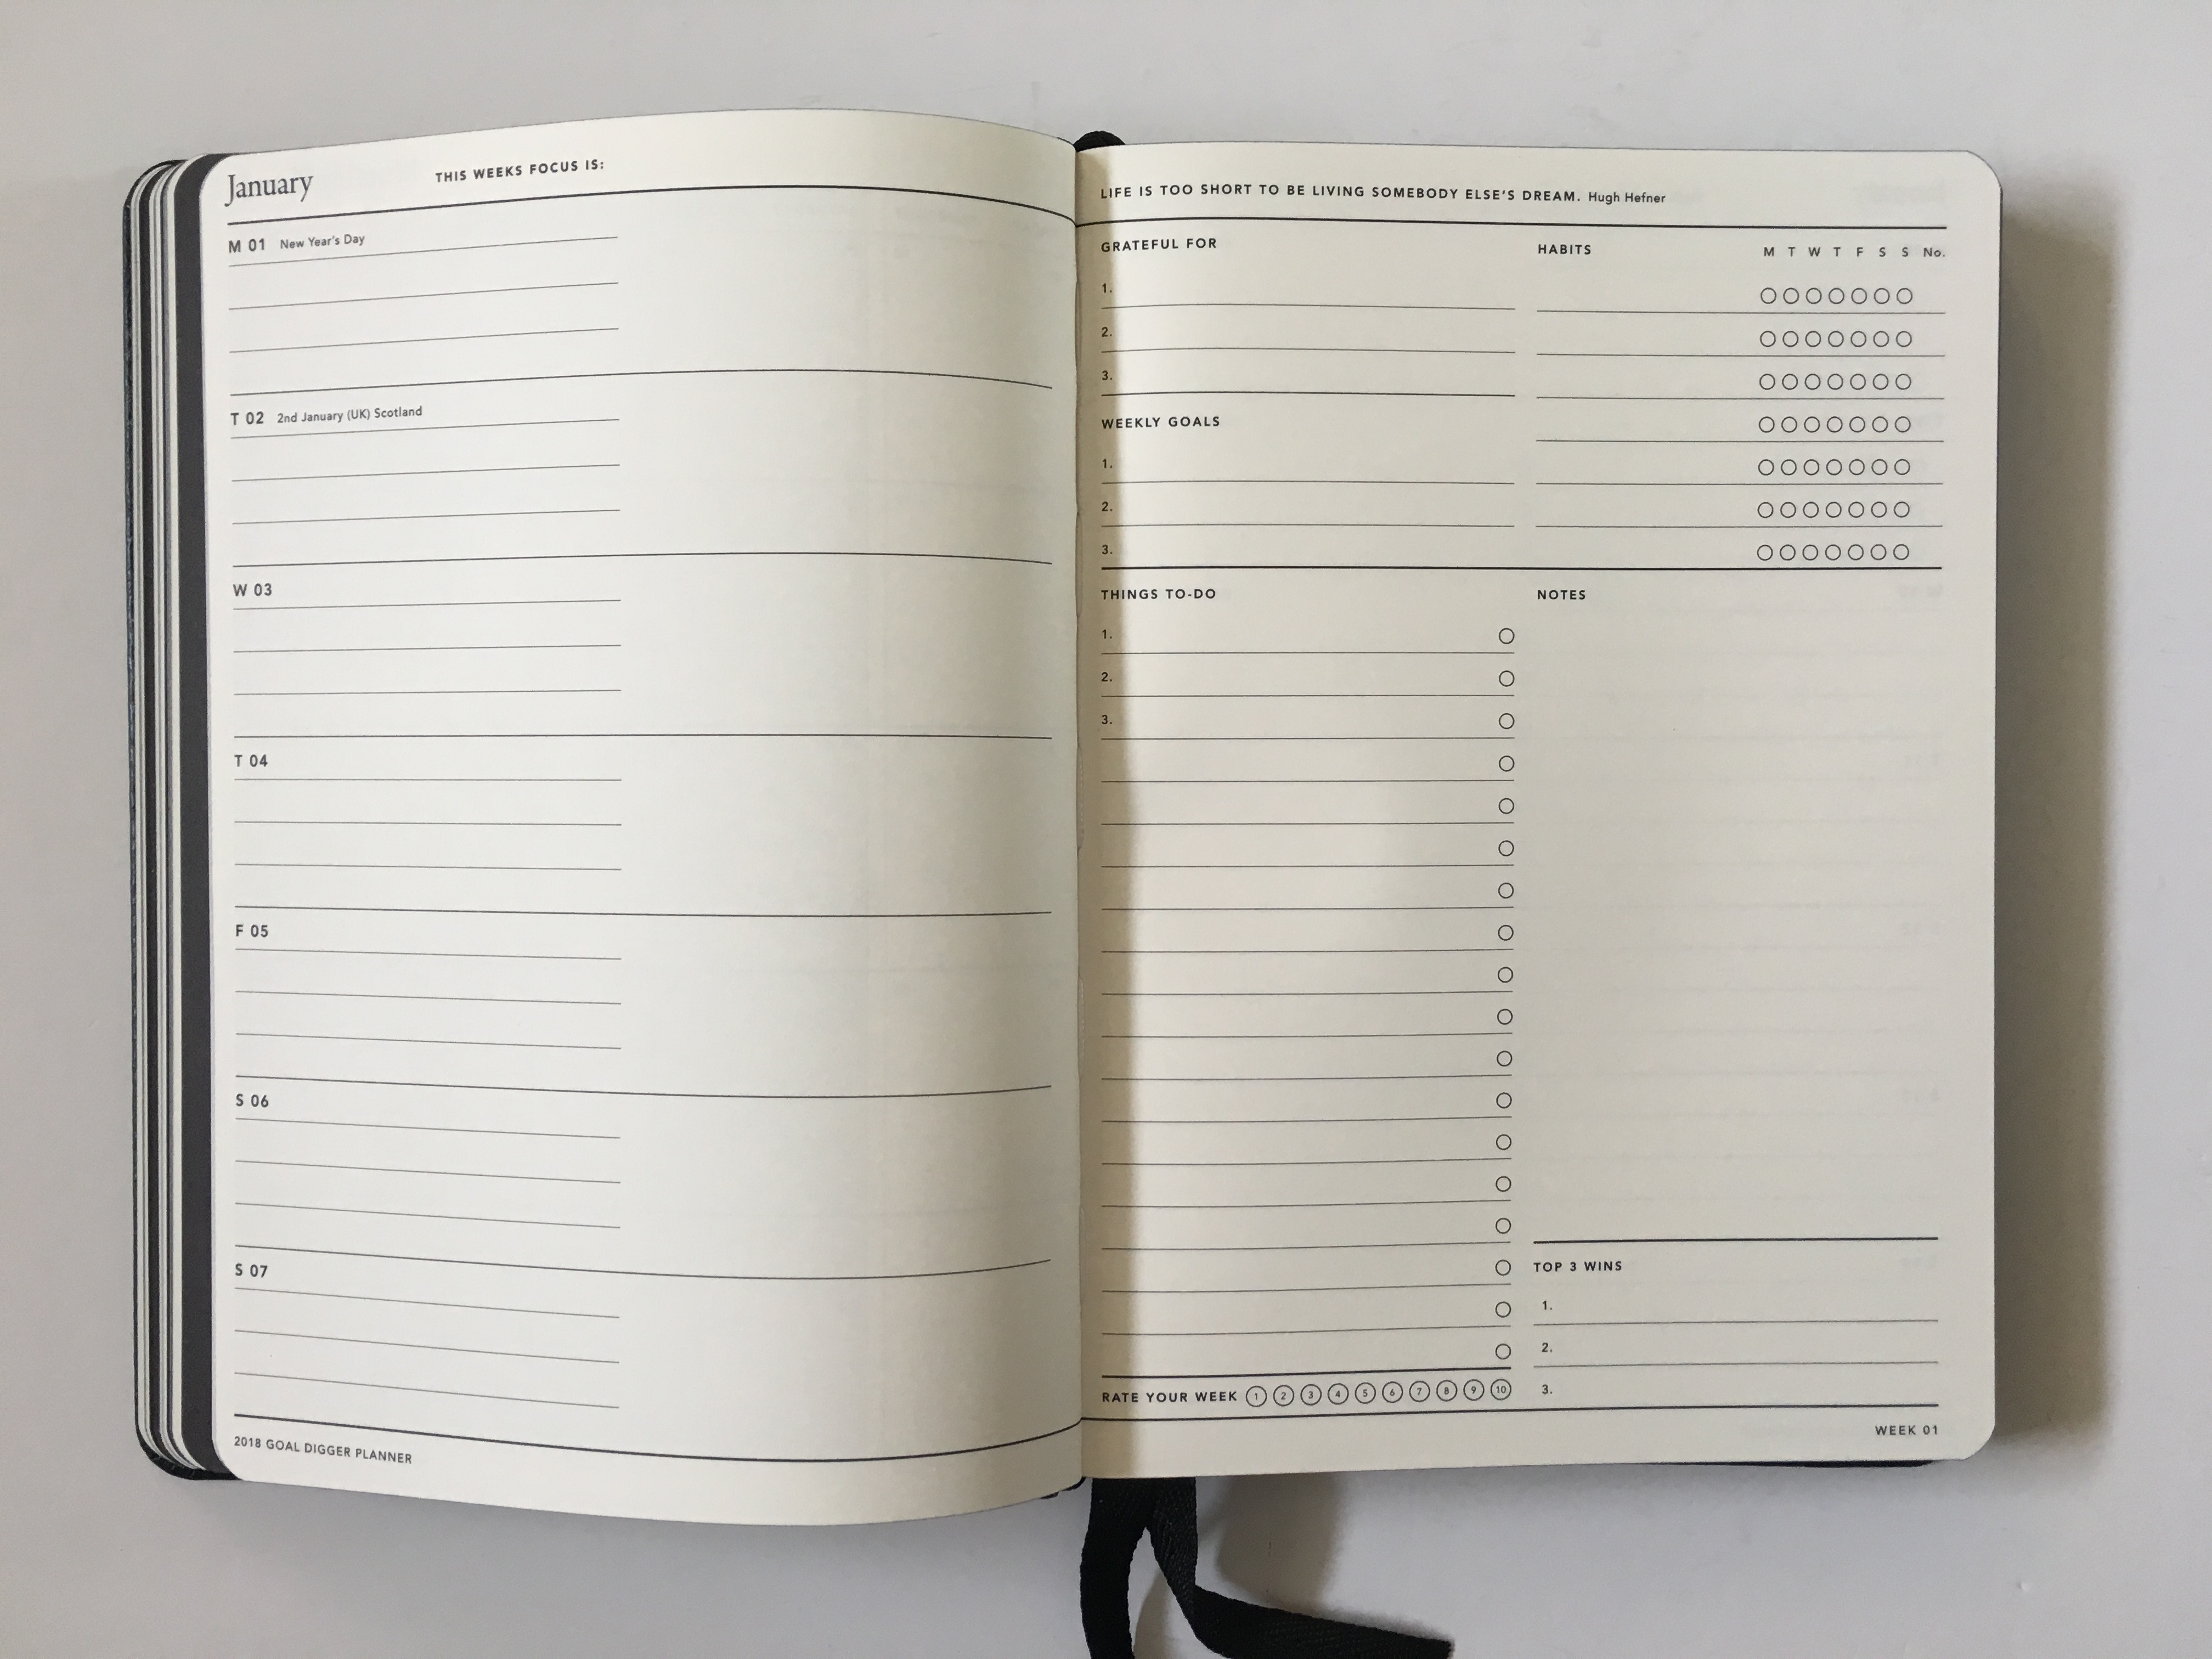 mi goals planner review weekly planner habit tracker top 3 horizontal australian made gender neutral minimalist simple planner pros and cons